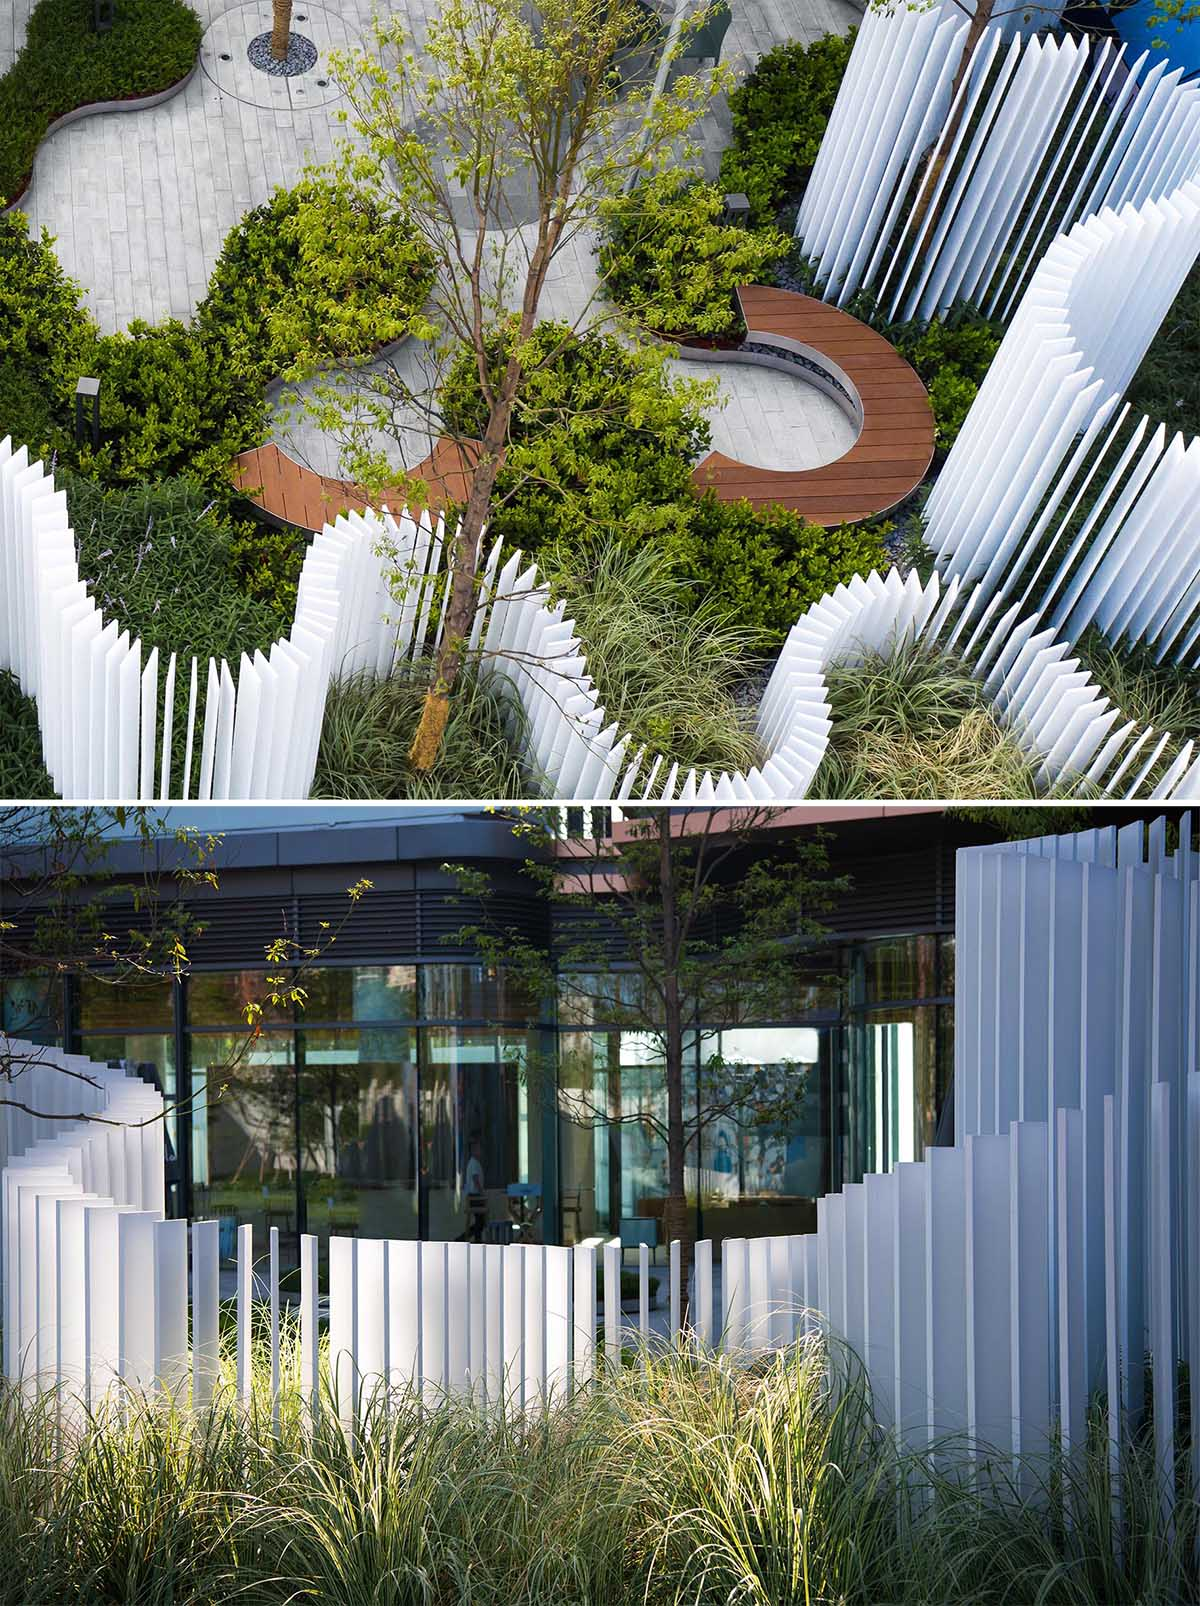 A landscaped park that includes curved seating, and a vertical white strip fence.